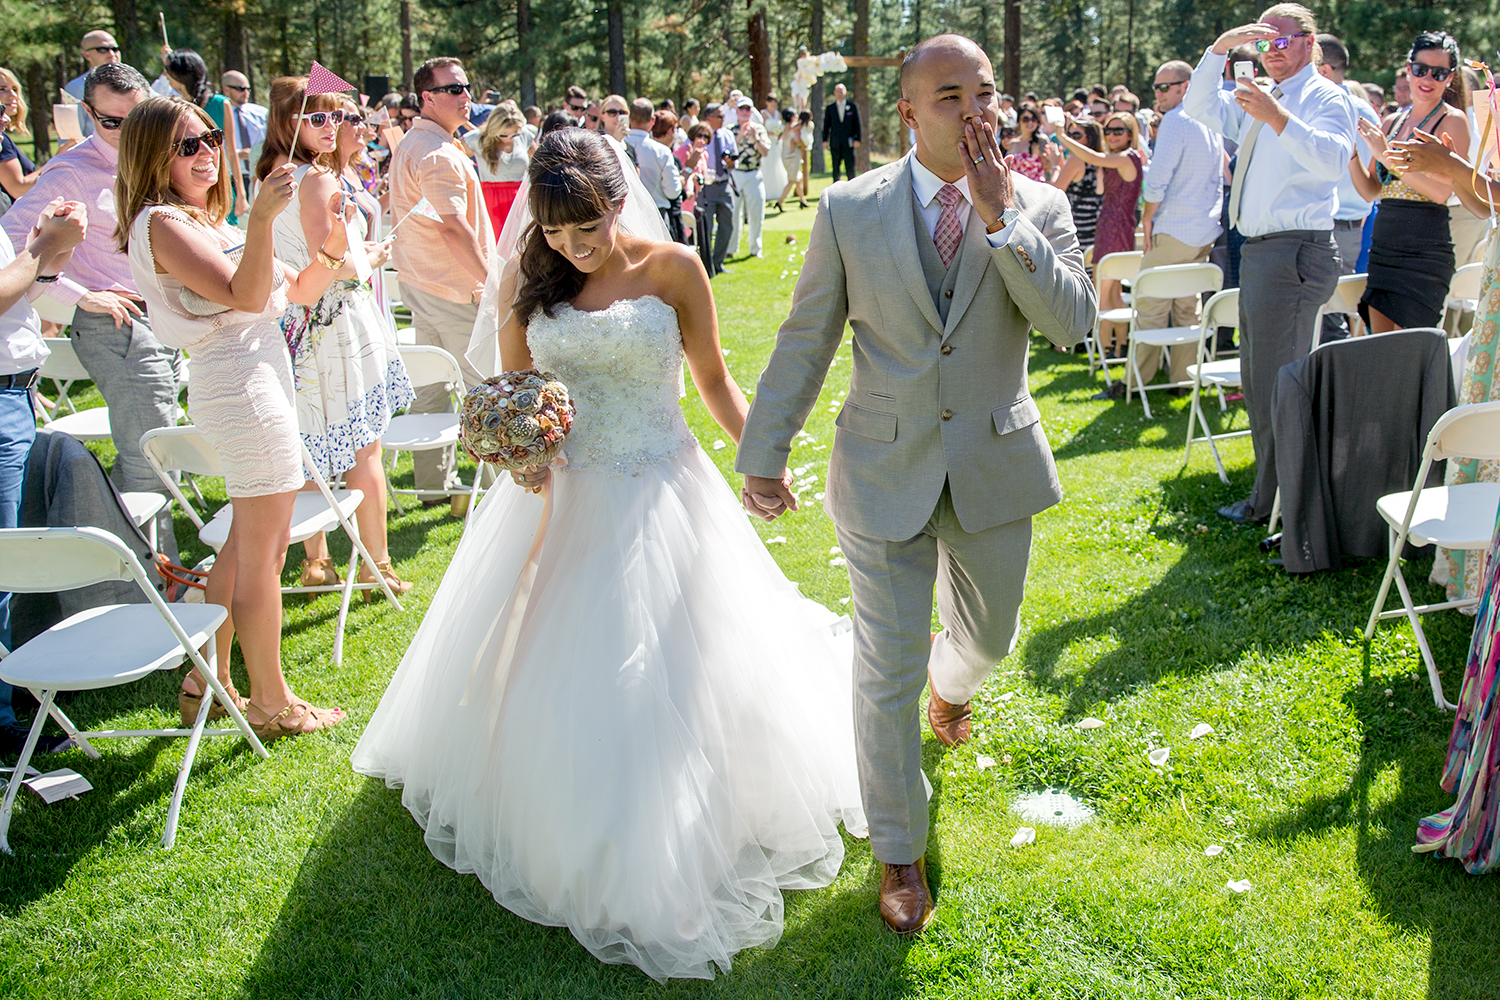 kevin-sawyer-photography-lake-tahoe-wedding-photographer (5).jpg